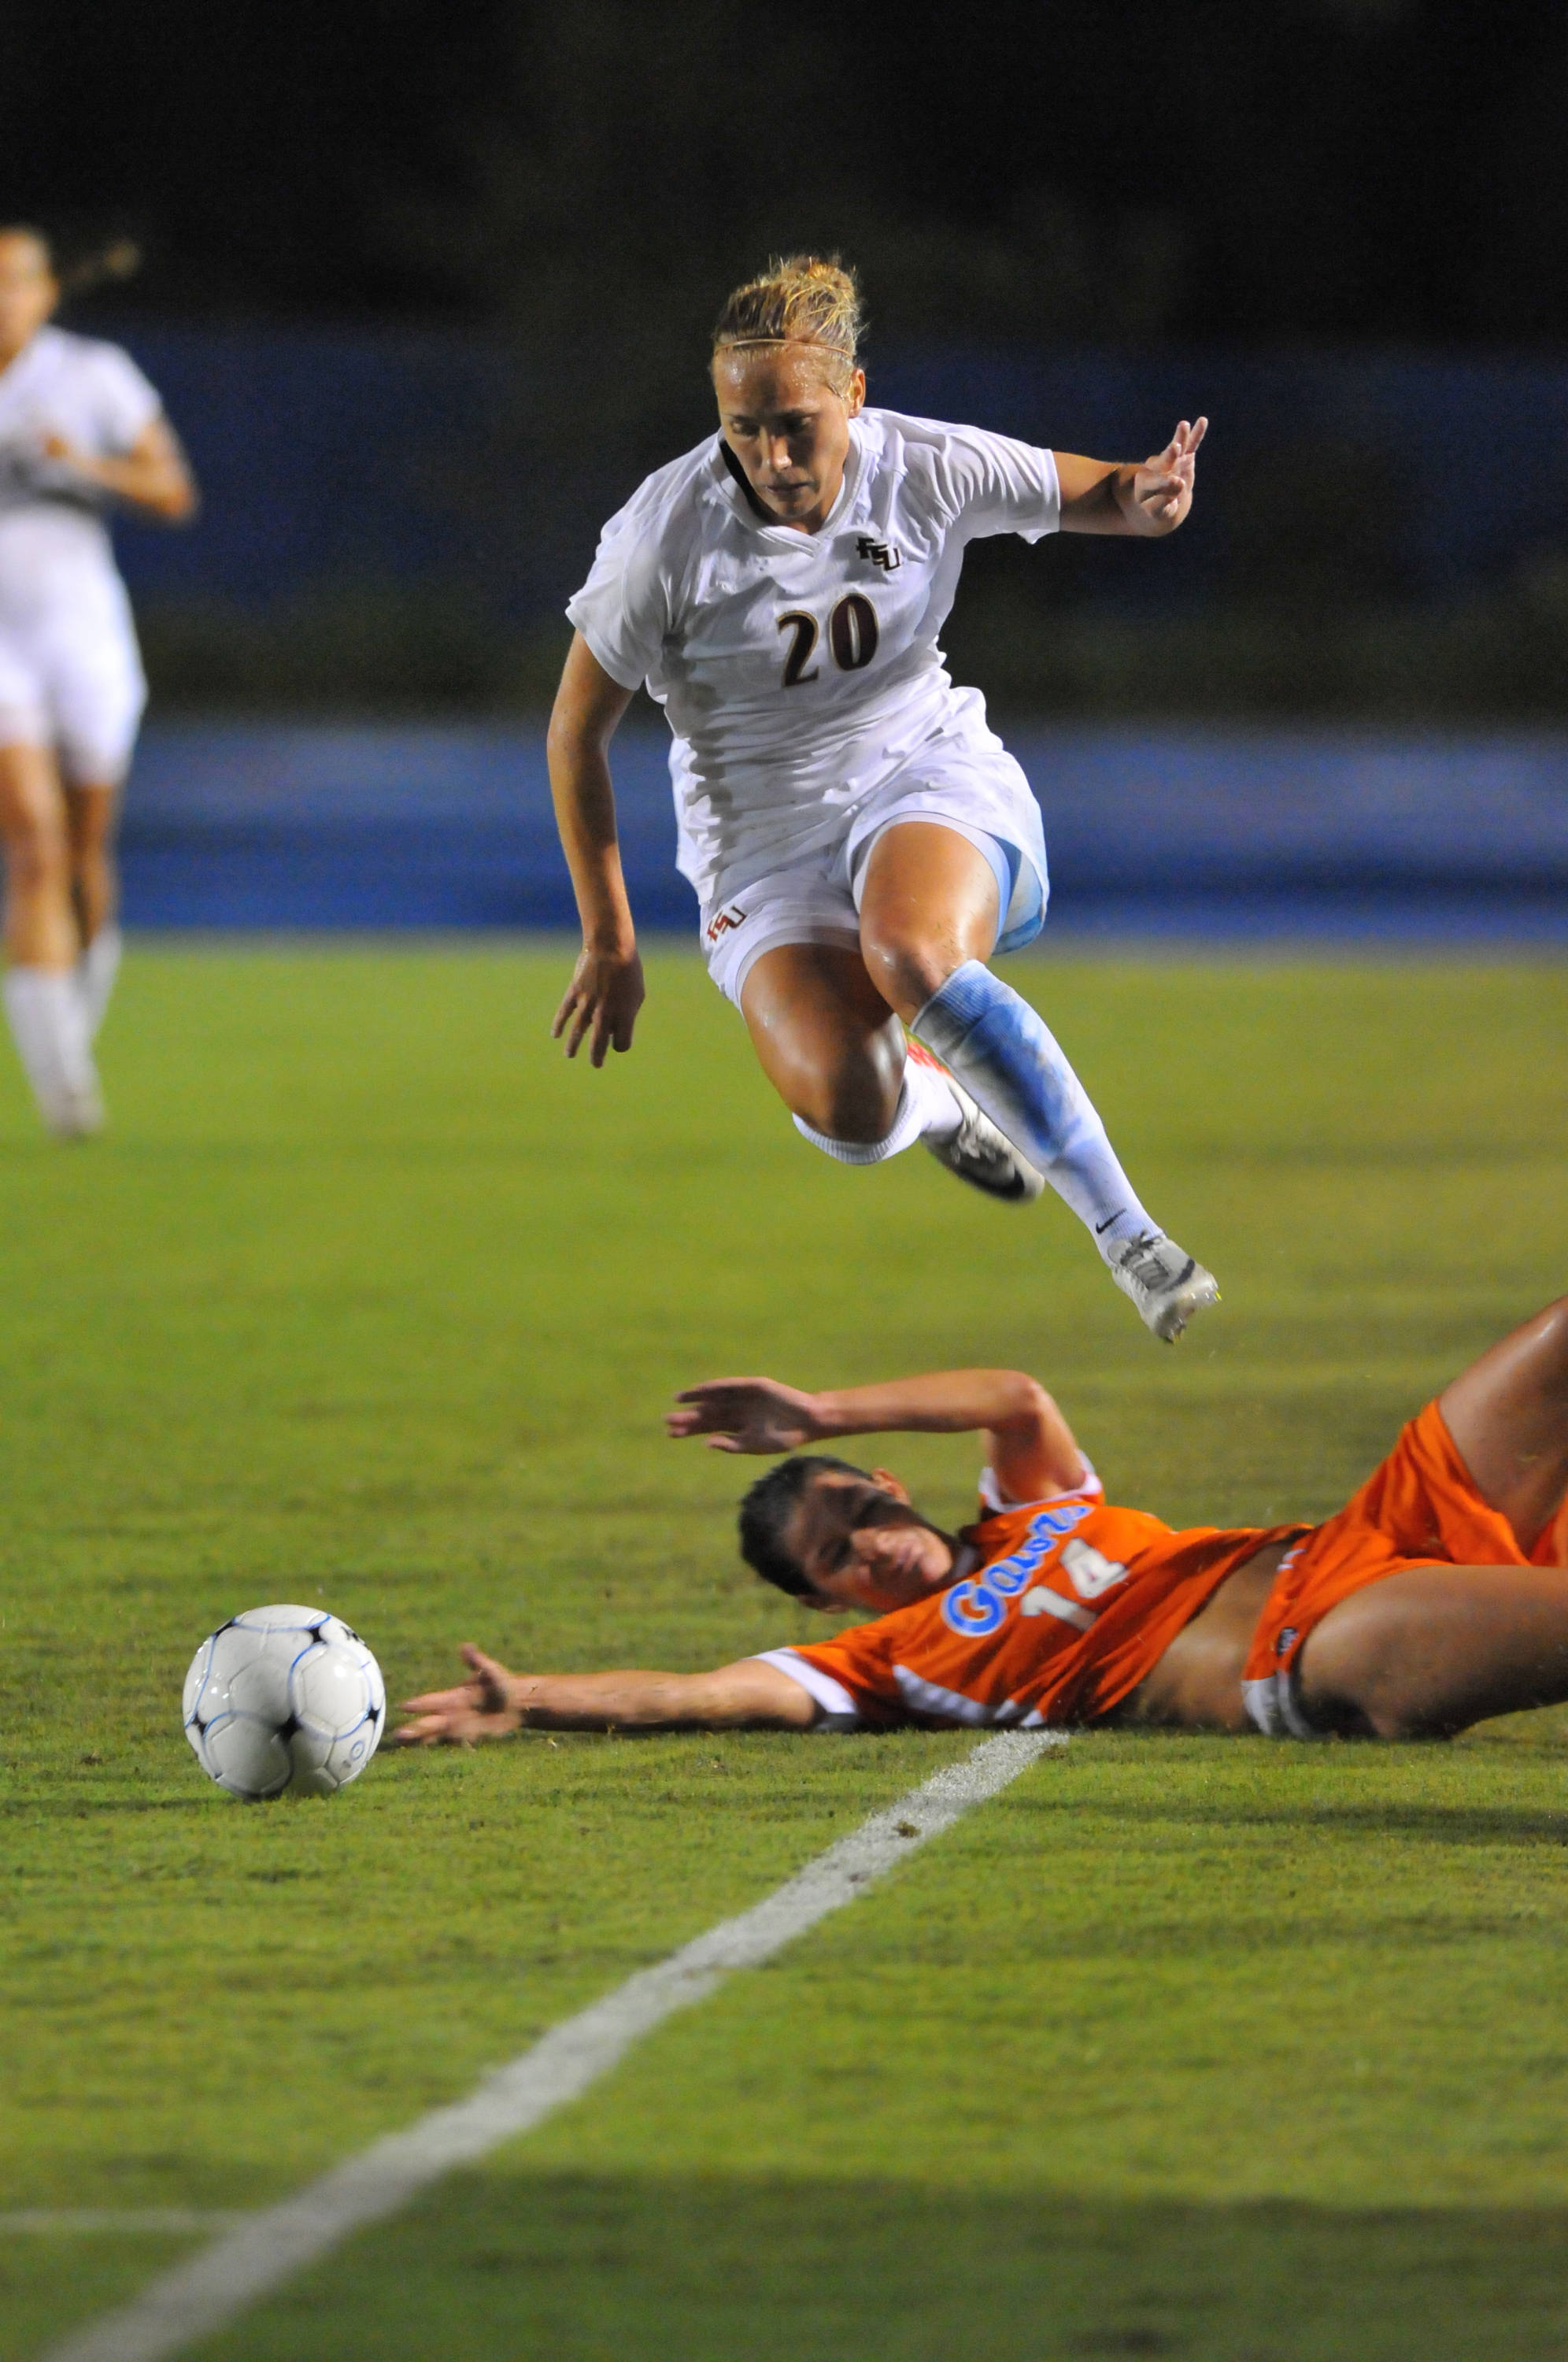 Janice Cayman hurdles a Gator player during a run down the sideline in the second half.